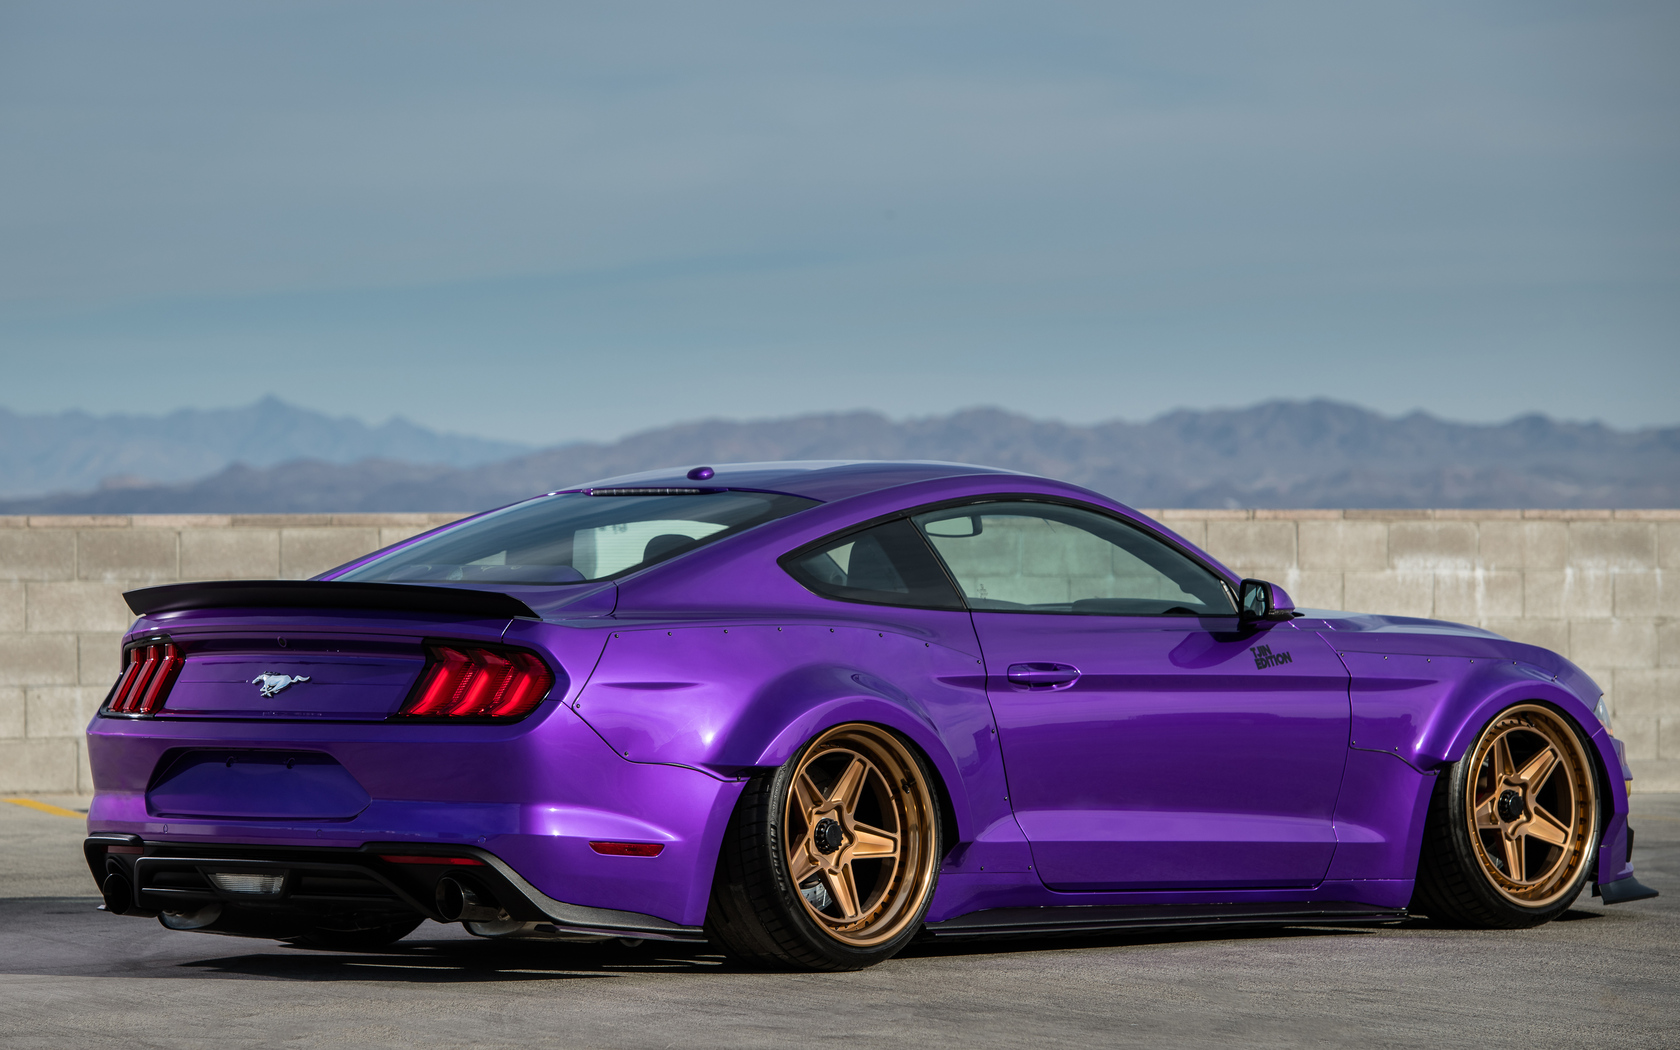 tjin-edition-ford-mustang-ecoboost-2018-rear-4m.jpg